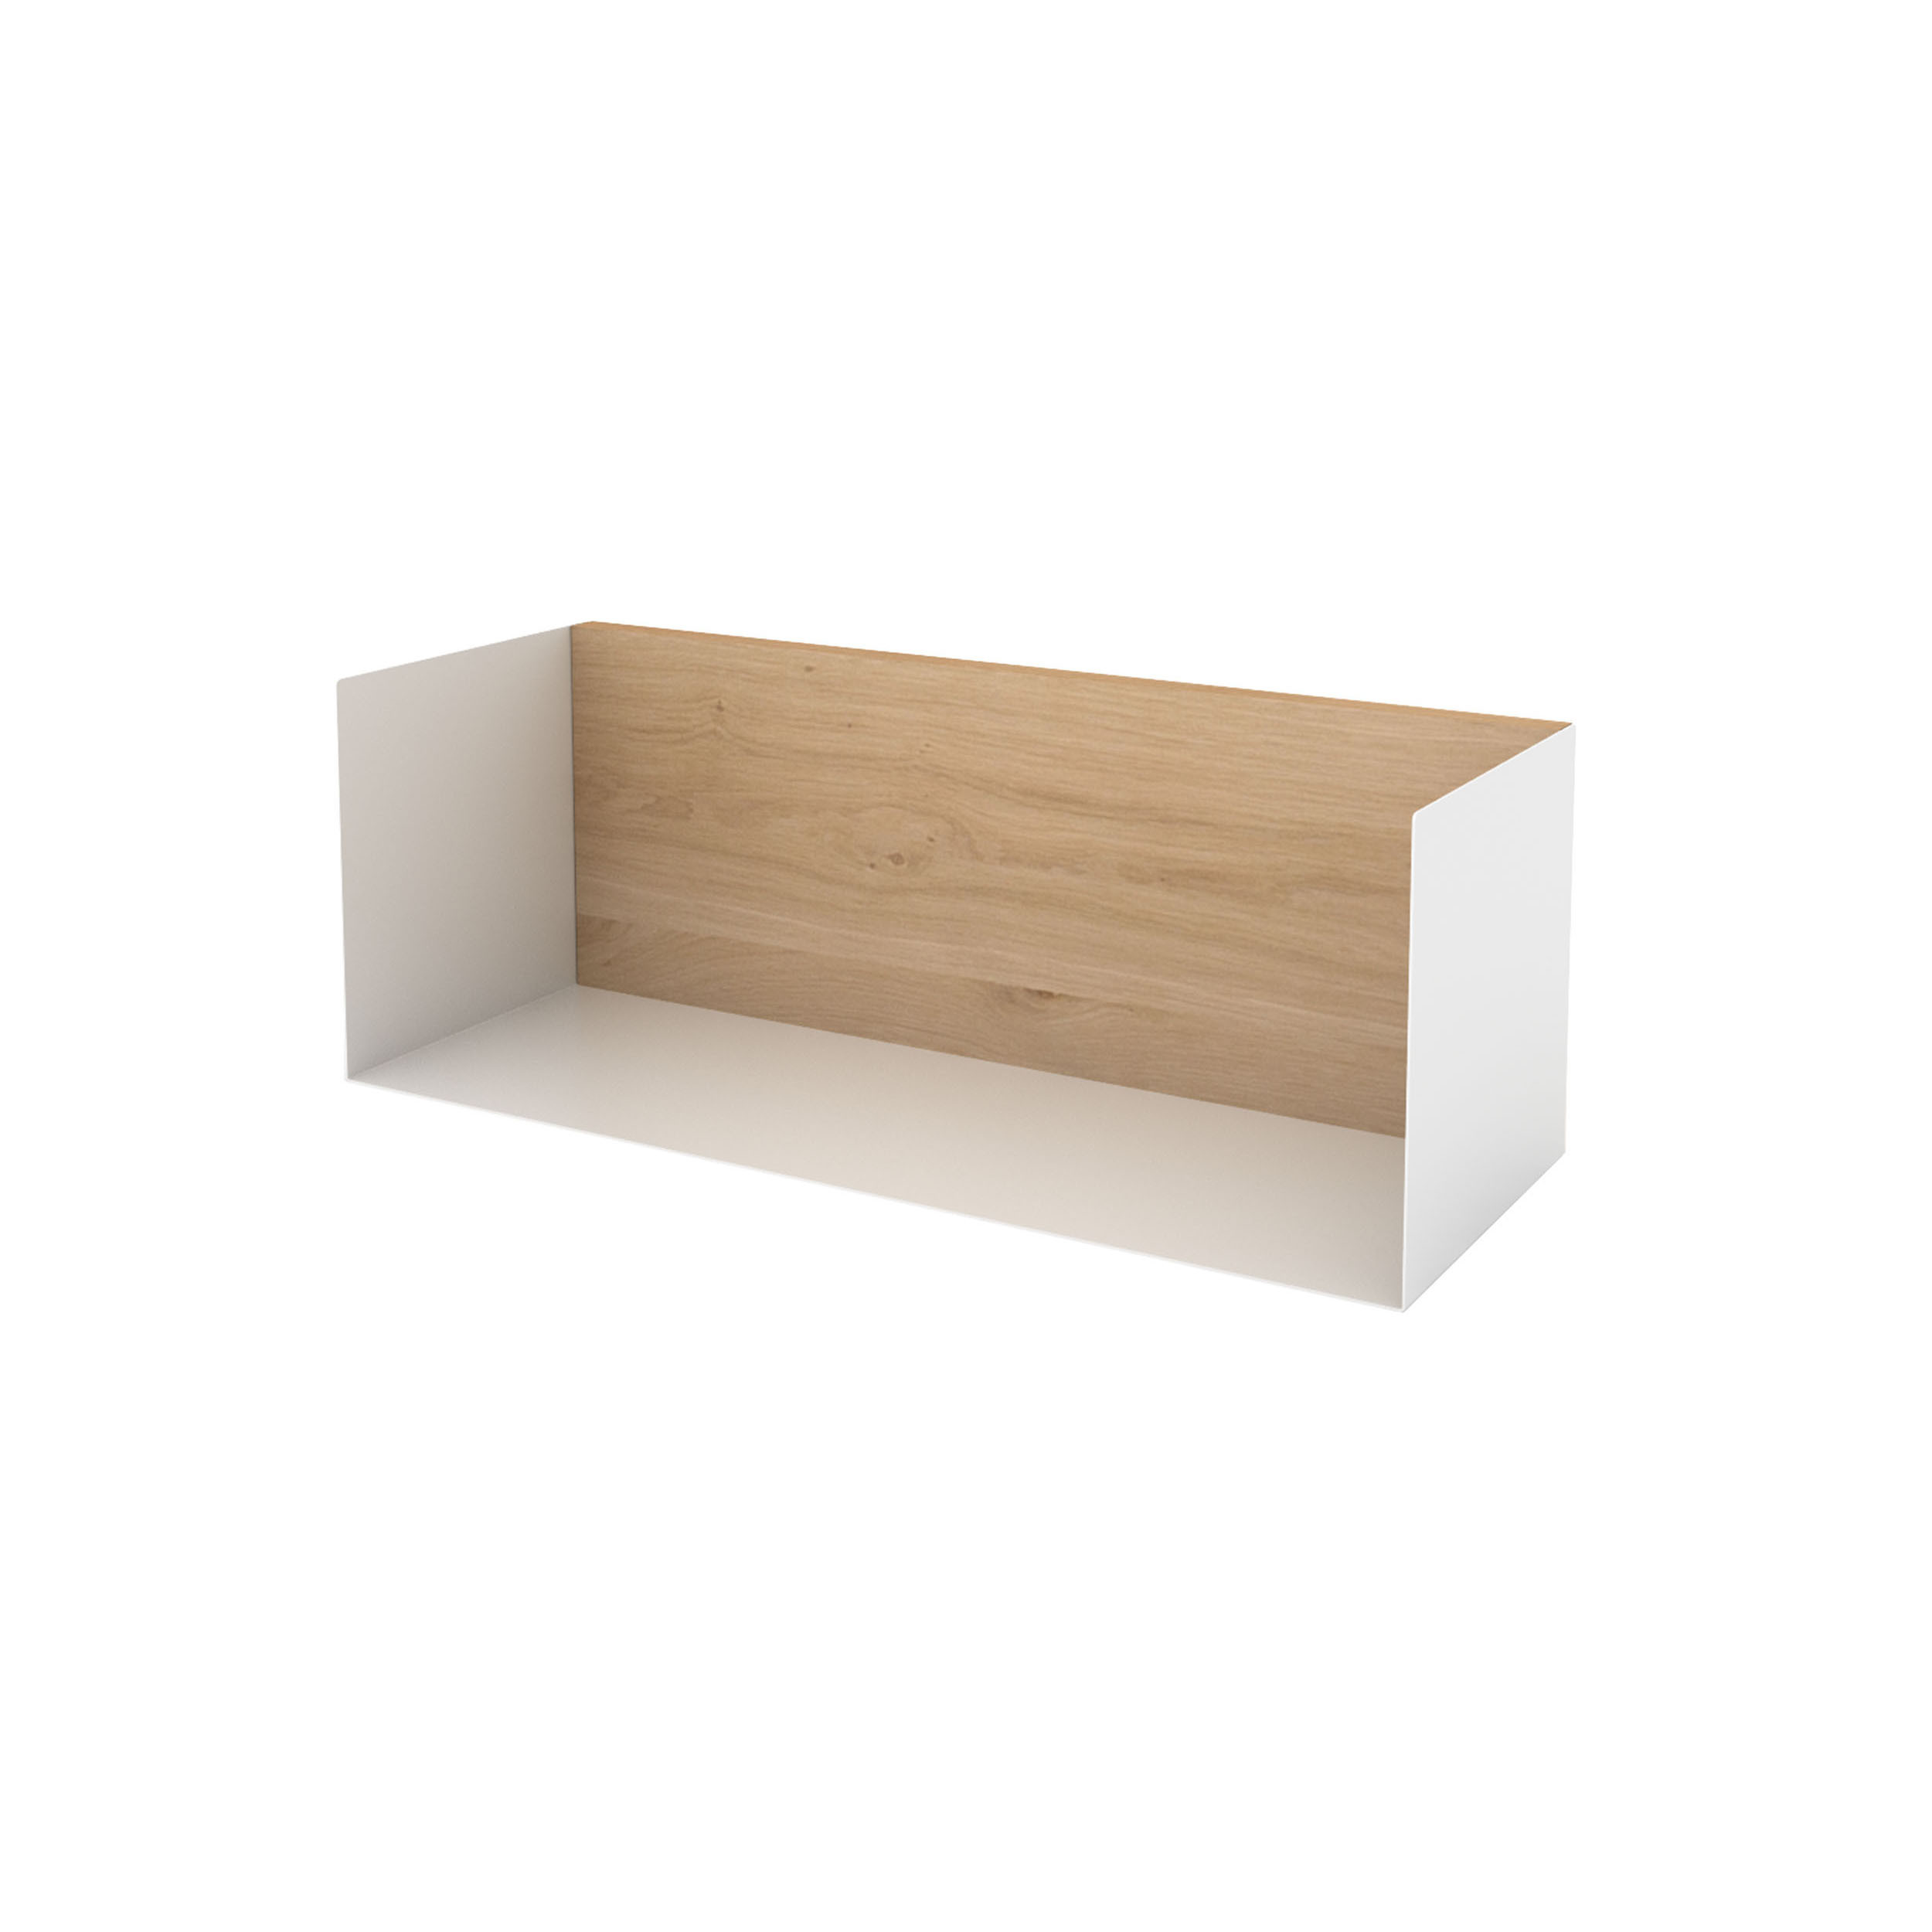 Regal Shelfy U Shelf Regal A046488 004 Online Kaufen Bei Woonio